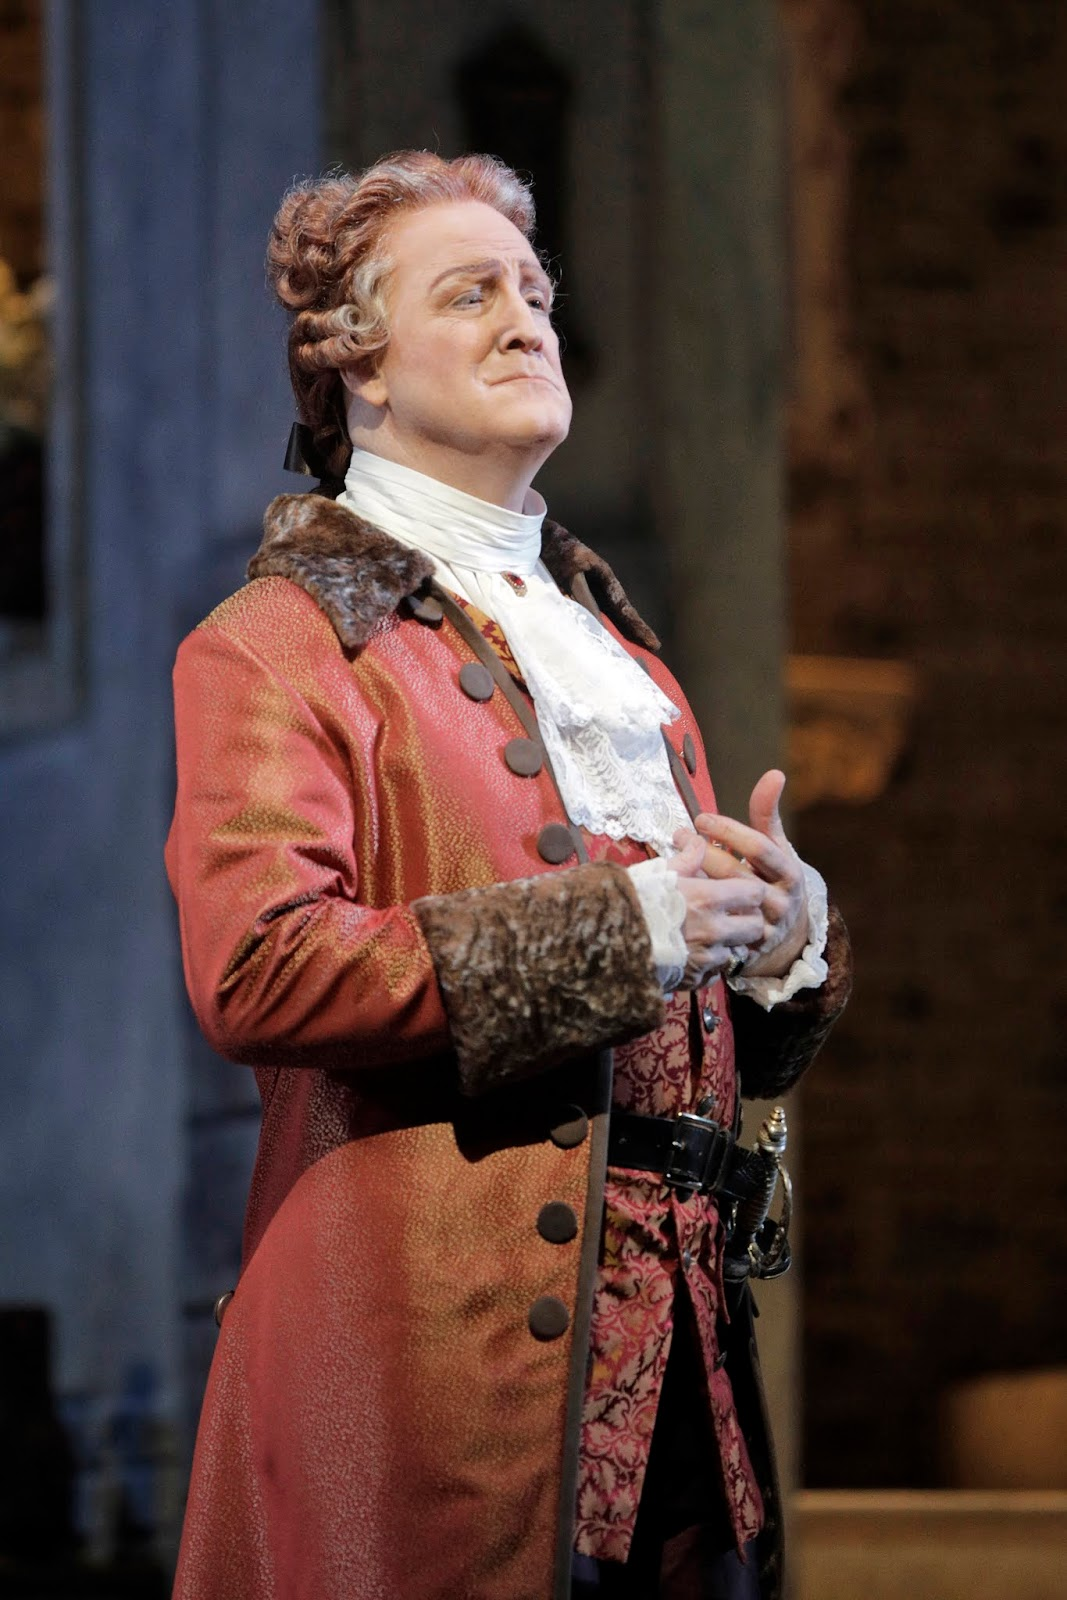 IN REVIEW: bass-baritone PHILIP SKINNER as Geronte in San Francisco Opera's November 2019 production of Giacomo Puccini's MANON LESCAUT [Photograph by Cory Weaver, © by San Francisco Opera]